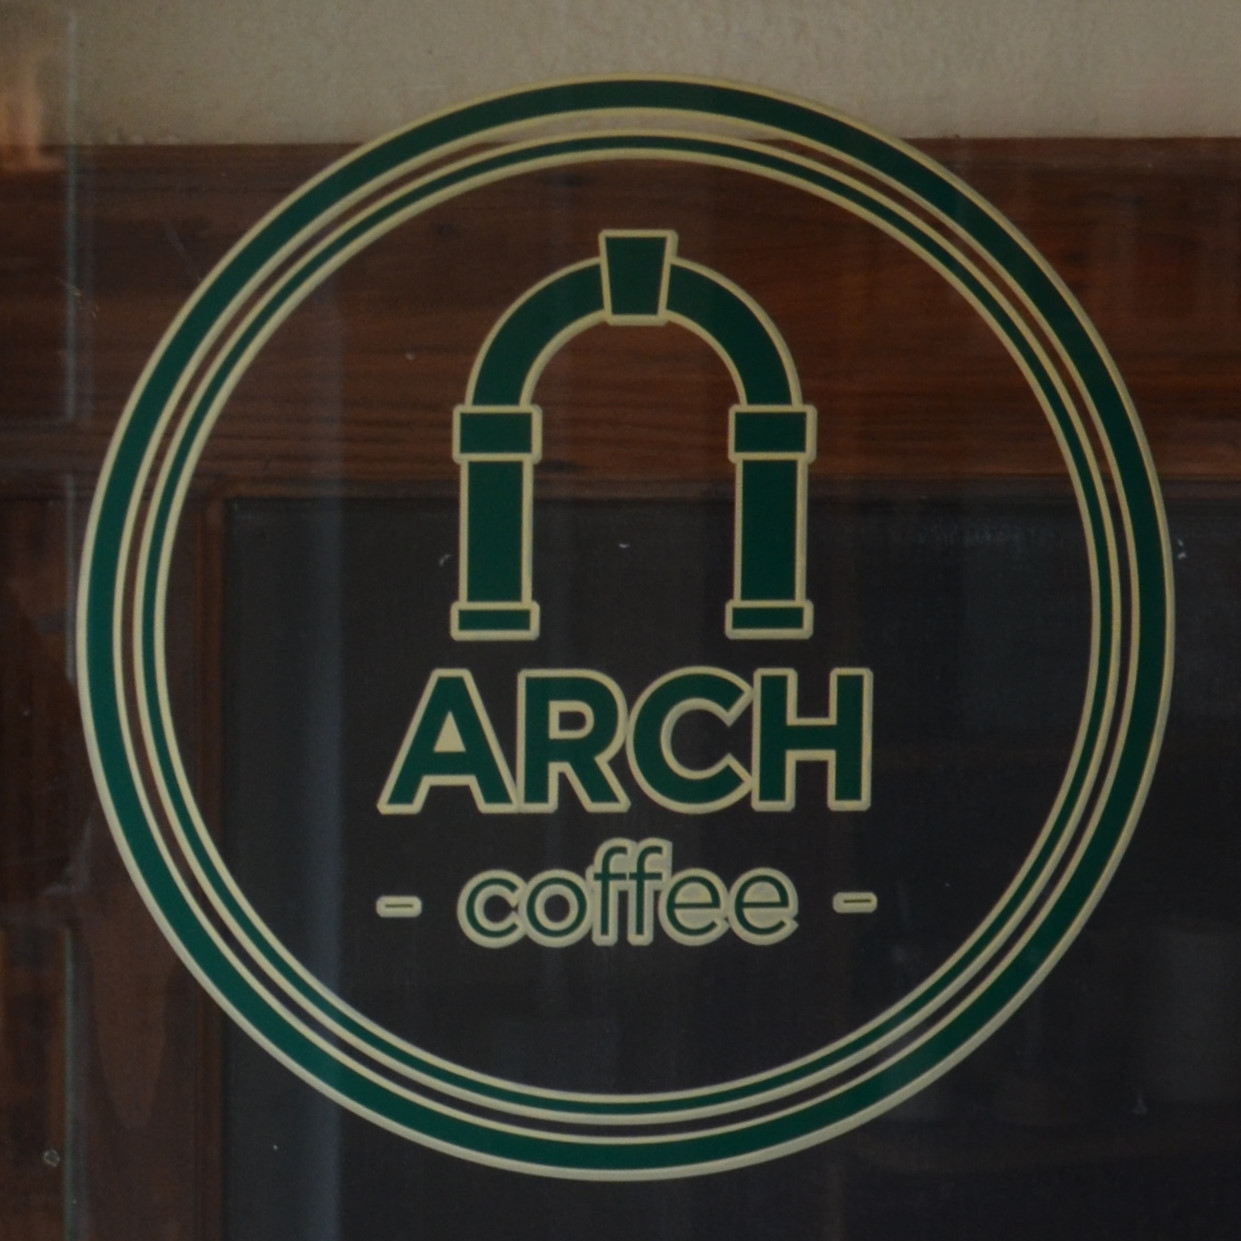 The Arch Coffee logo, taken from the door of Waterford's Arch Coffee on Peter's Street.